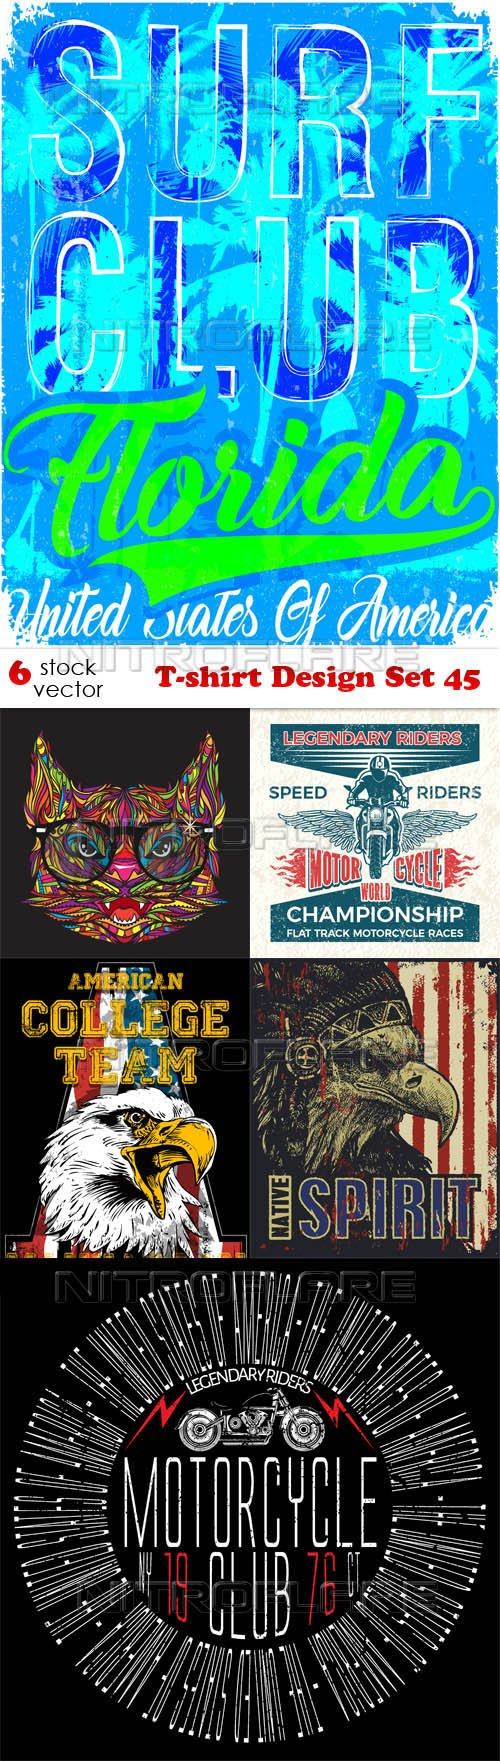 Vectors - T-shirt Design Set 45